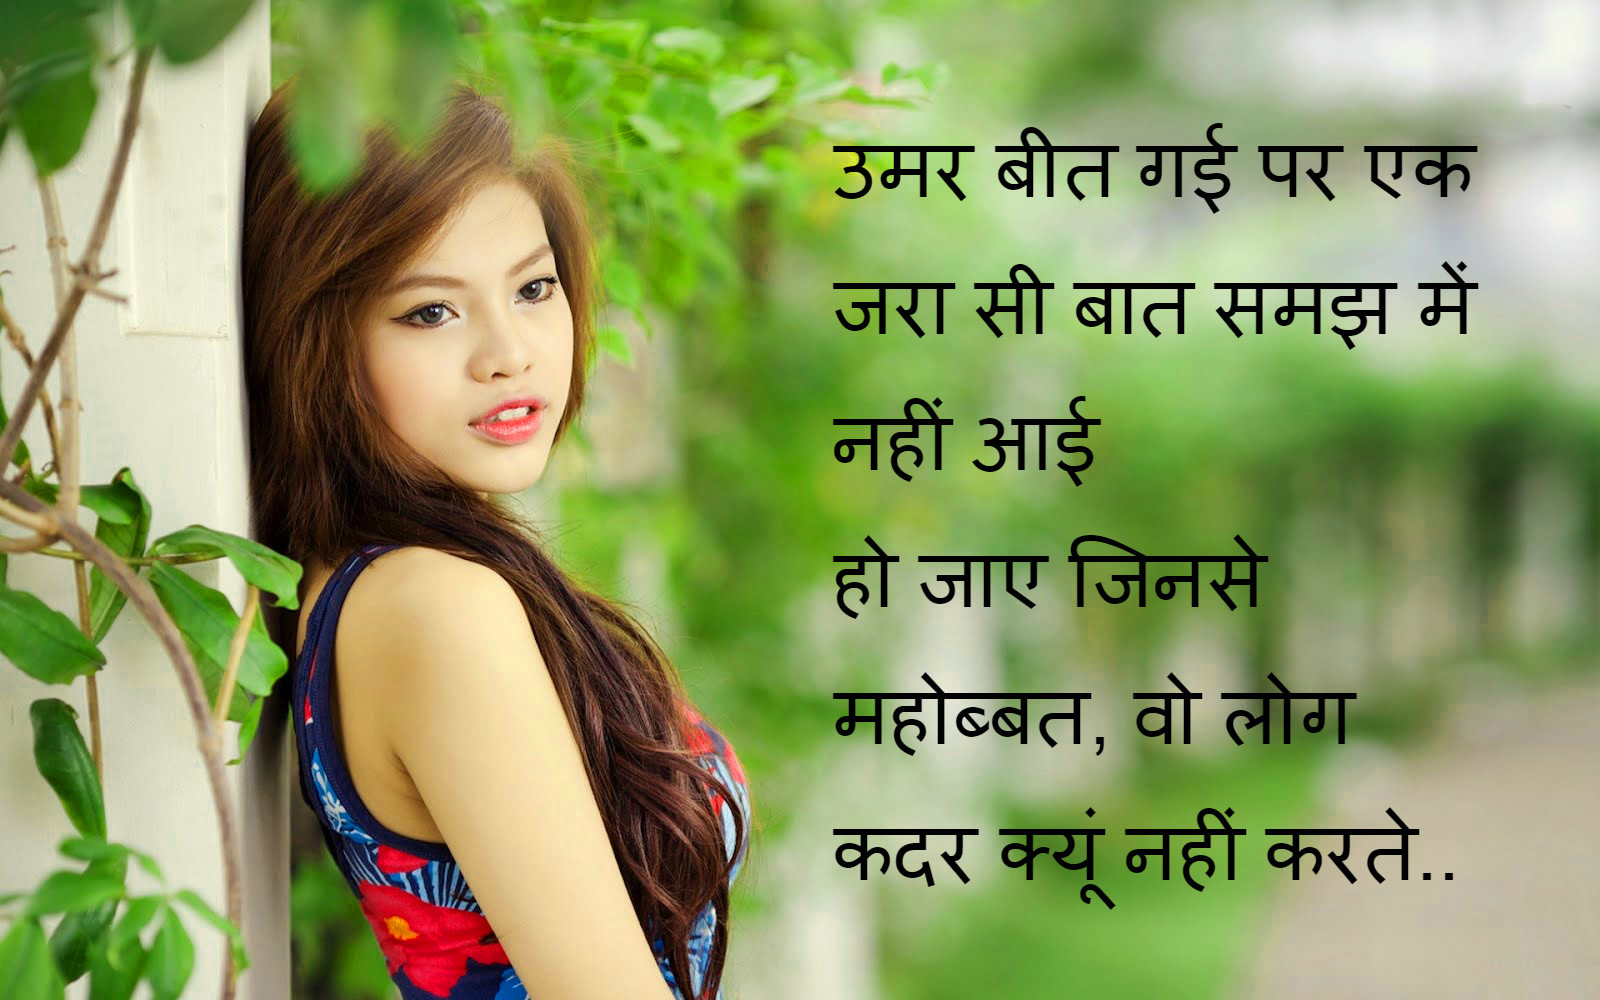 Romantic DP For Whatsapp With Hindi Wallpaper Pics for girls